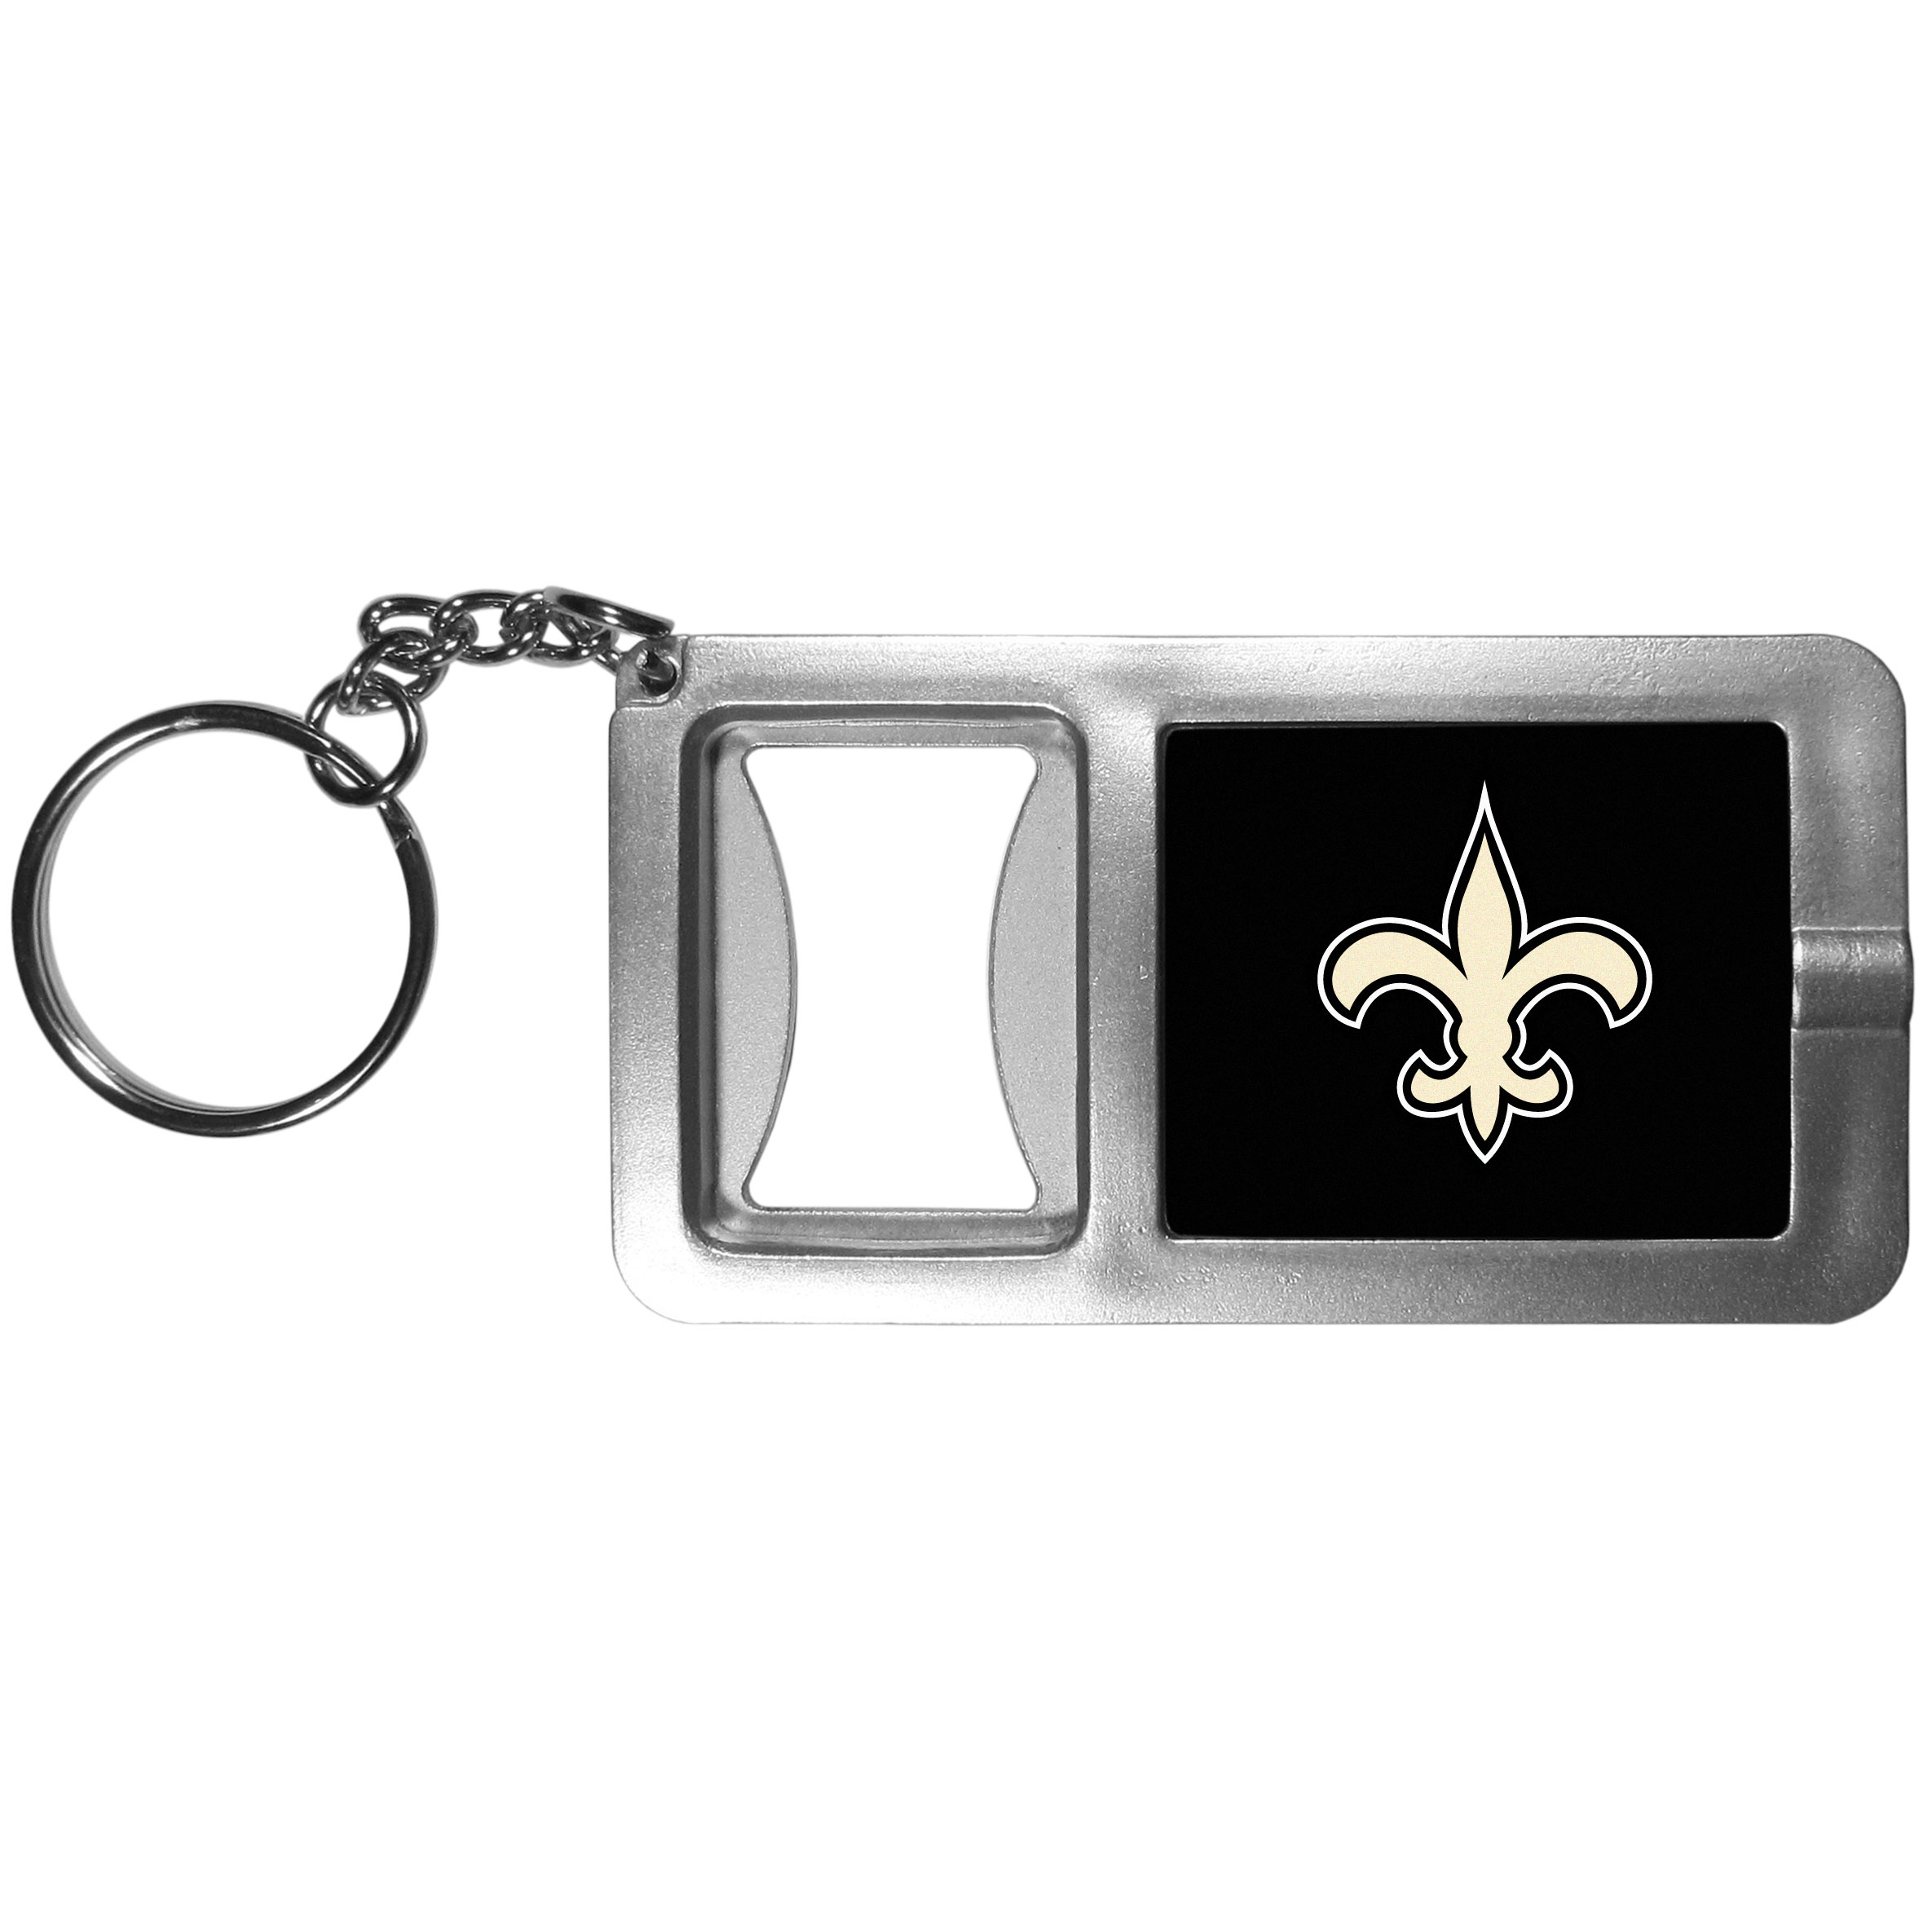 New Orleans Saints Flashlight Key Chain with Bottle Opener - Never be without light with our New Orleans Saints flashlight keychain that features a handy bottle opener feature. This versatile key chain is perfect for camping and travel and is a great way to show off your team pride!